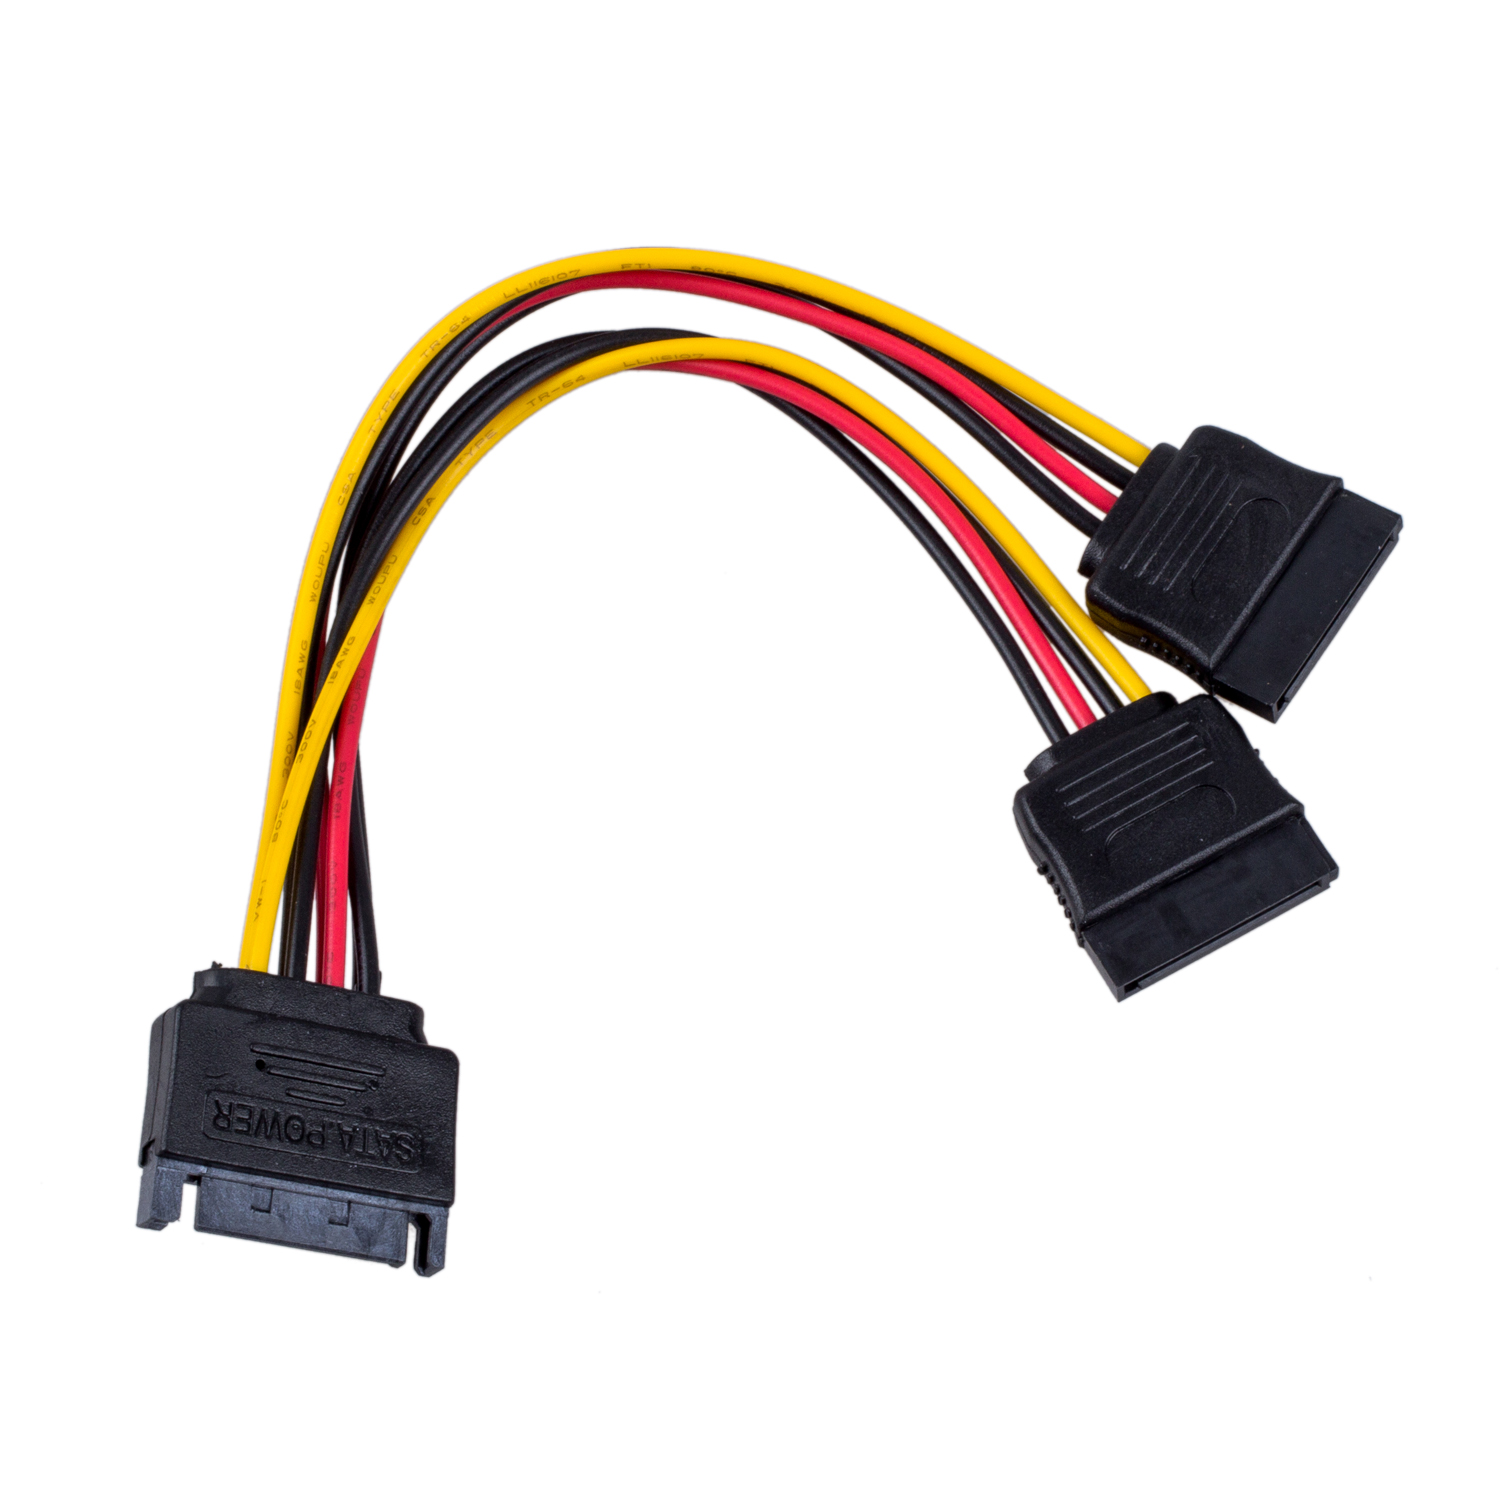 6in Sata Power Y Splitter Cable Adapter M F With 50cm Data Australian Saa Cord Plug China Mainland Cords Breaks Out Into Two Connectors Allows Connection Of Drives To One Supply Connector